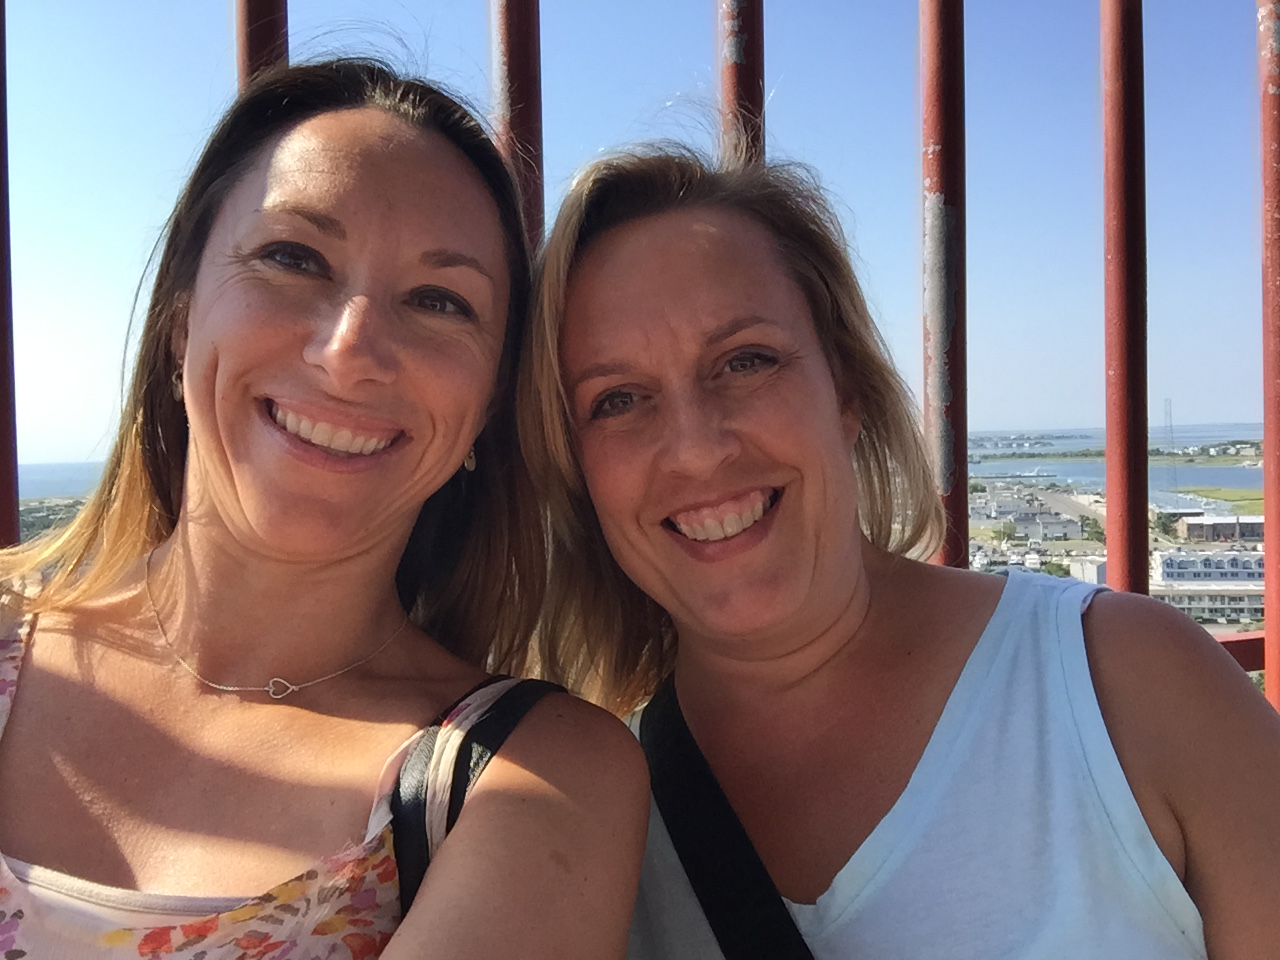 Michelle McBurney (left) with her friend.